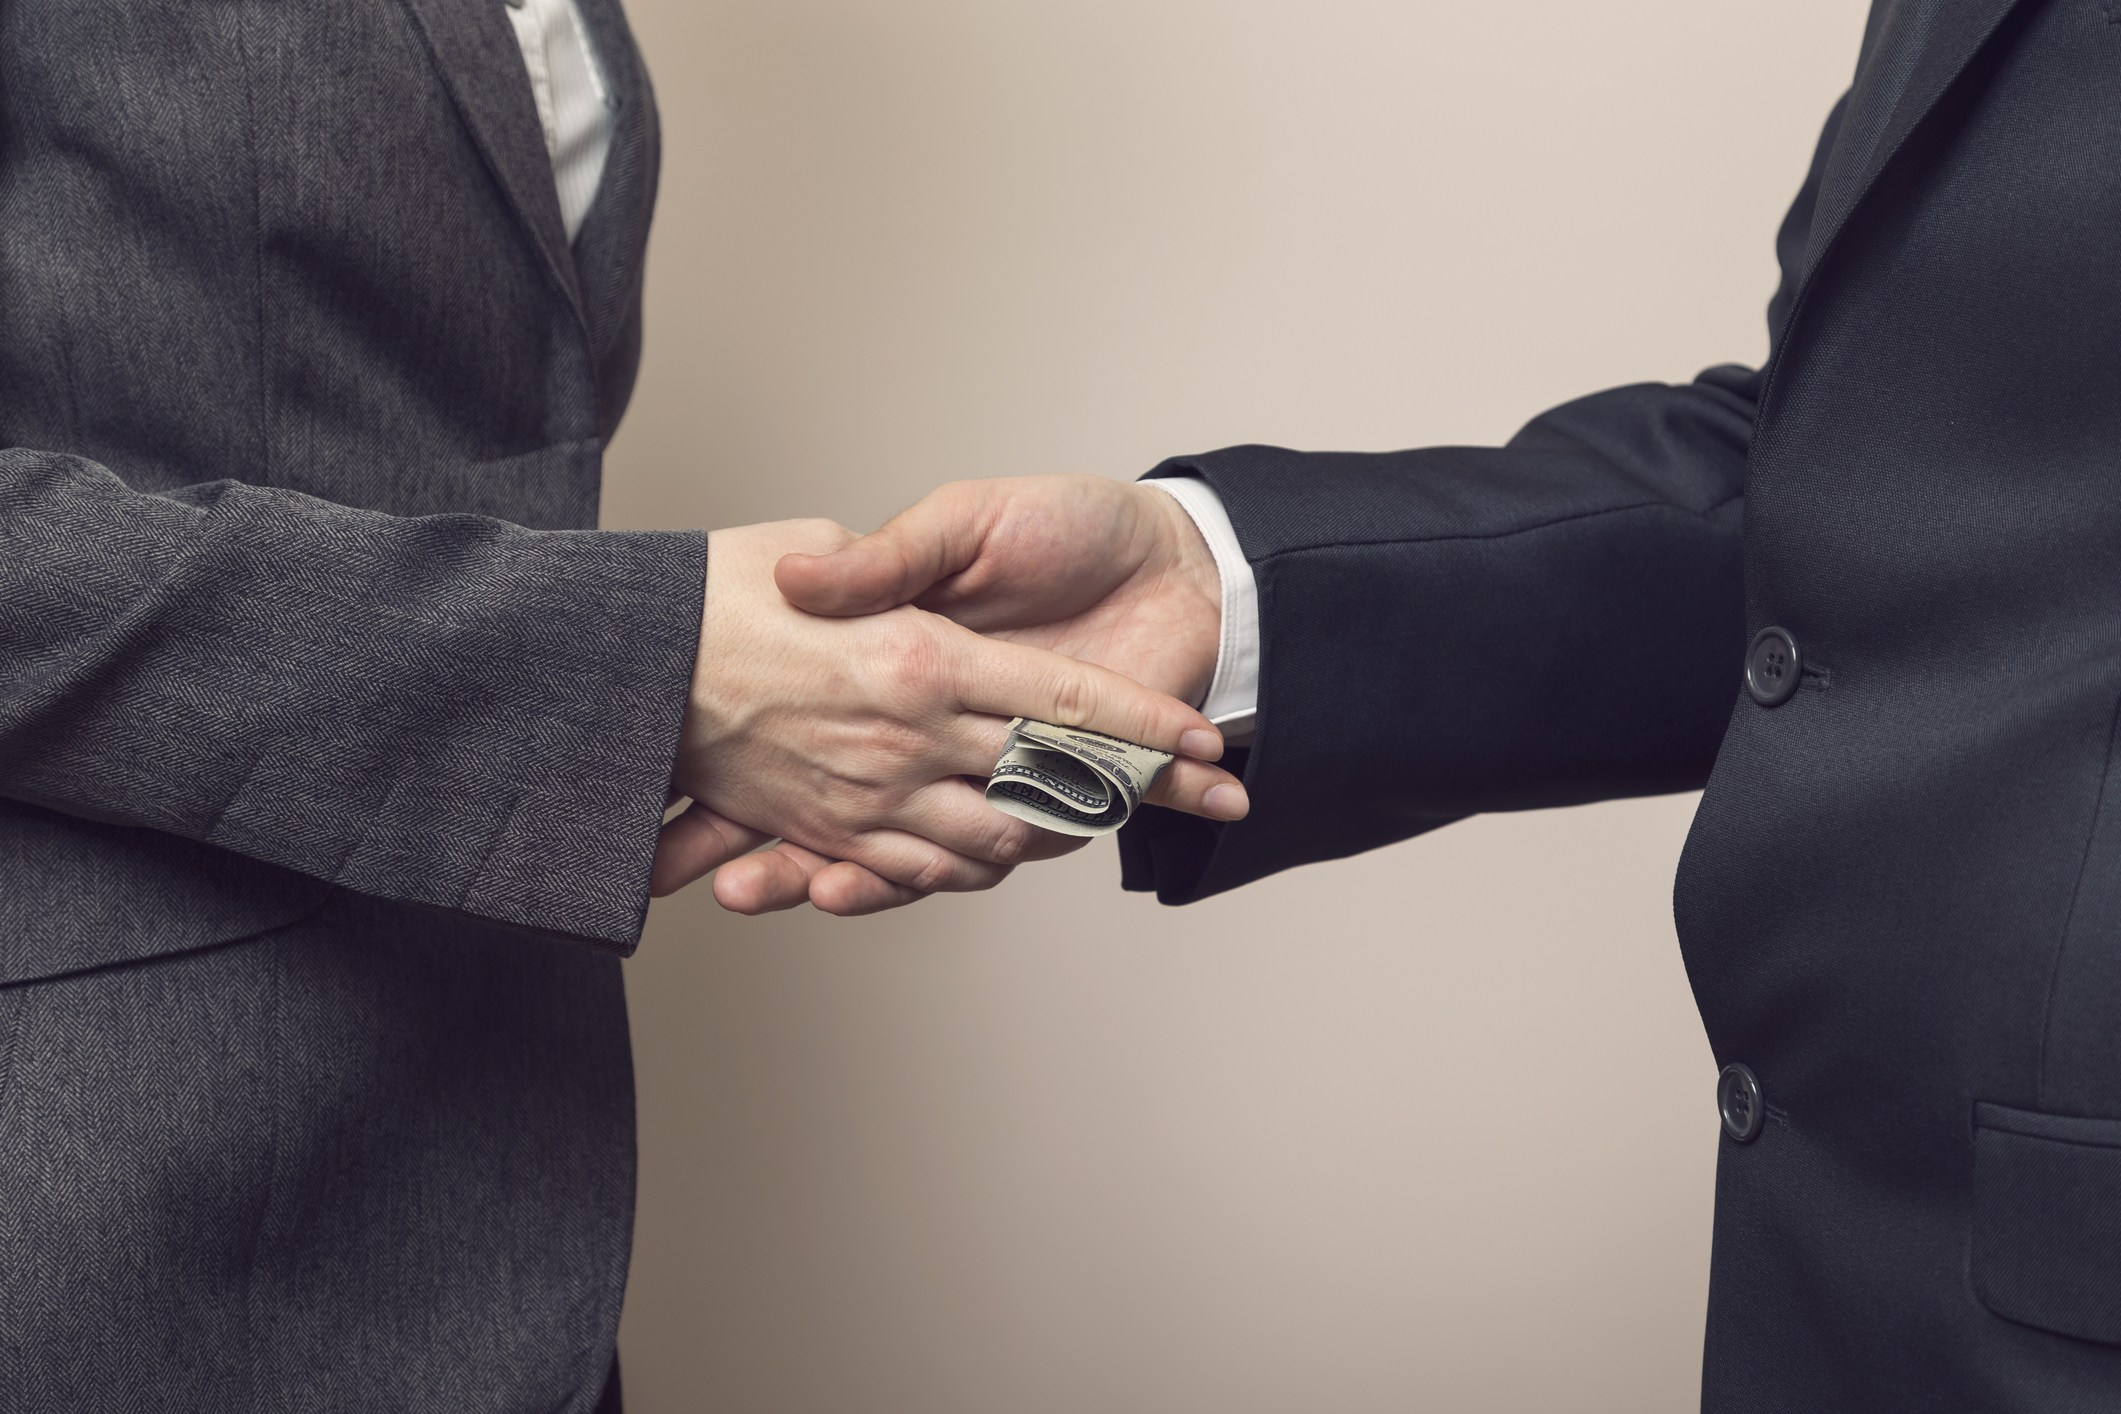 Bribery or Business corruption